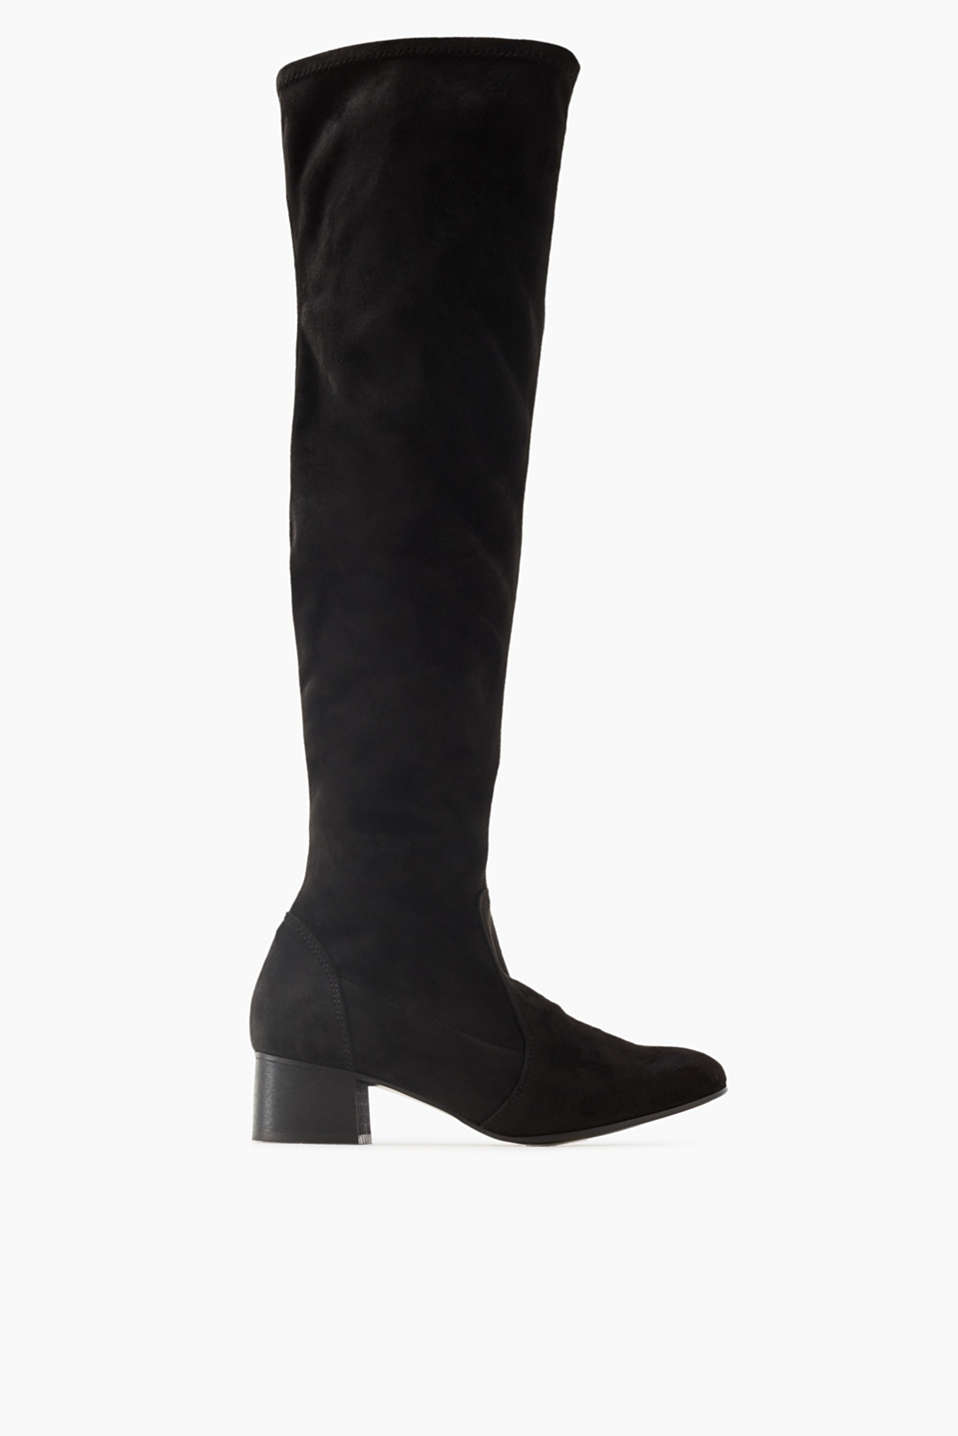 We love over-the-knee boots! This casual design with an elasticated shaft and a block heel will be your autumn favourite